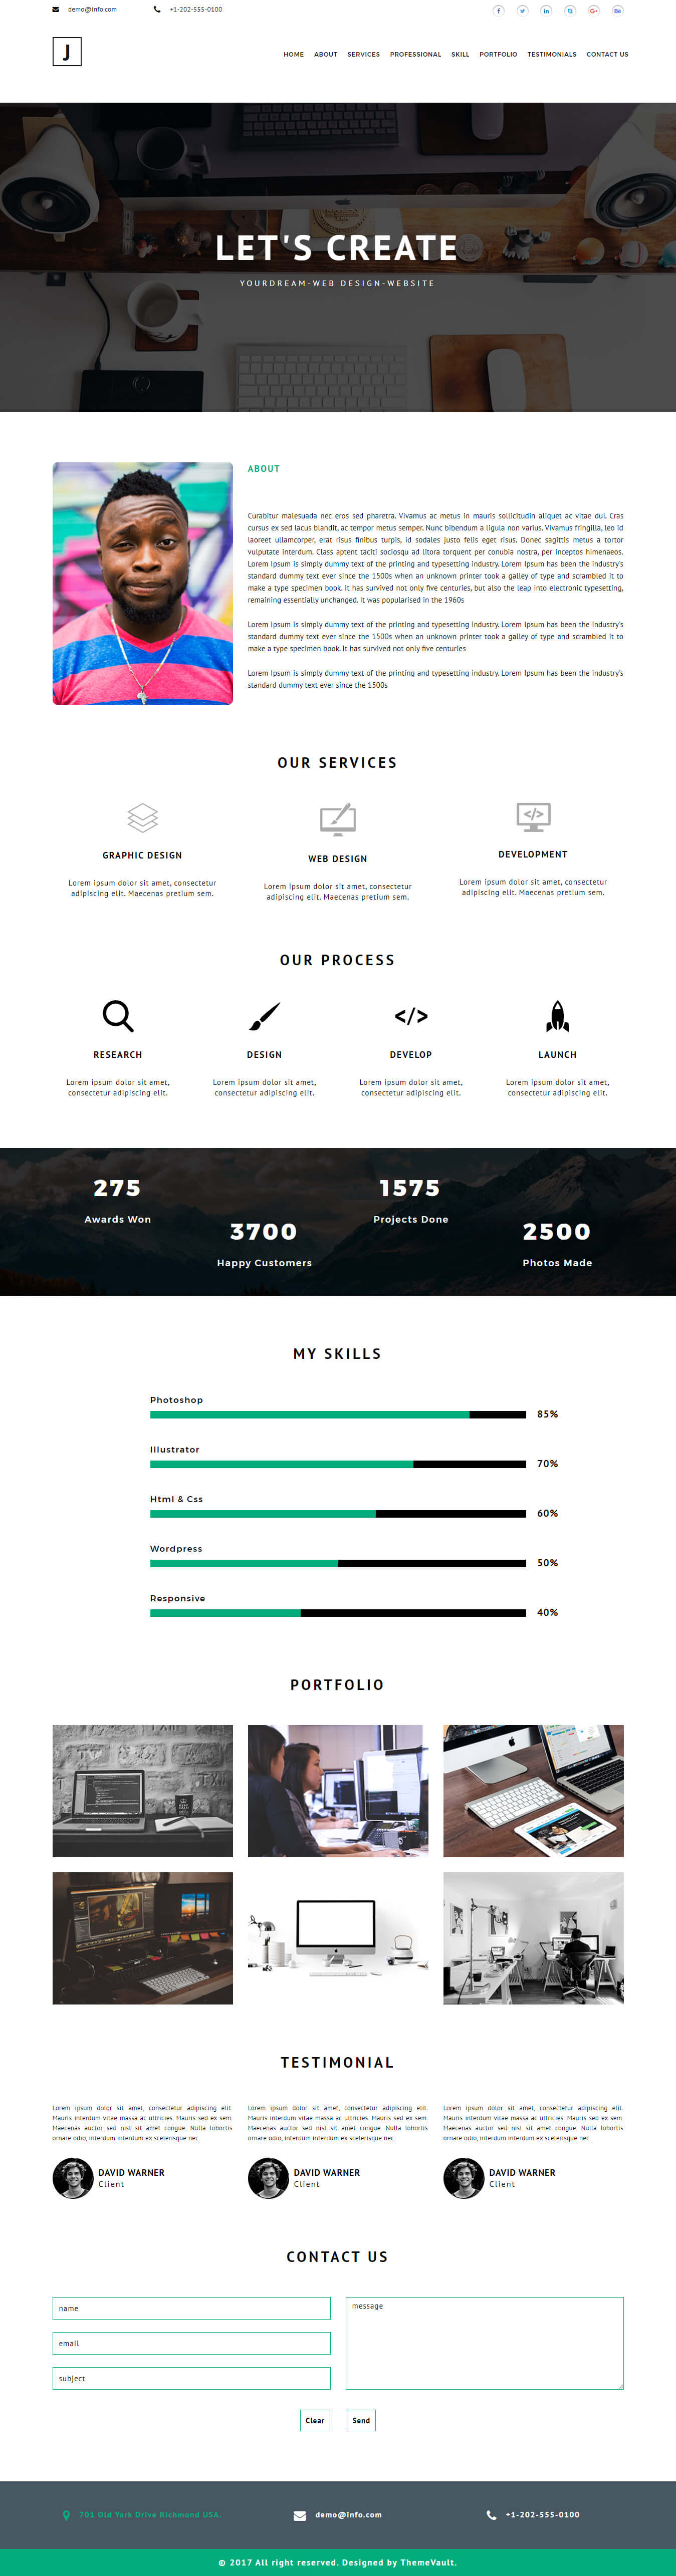 Justin-Kristiansen – web developer portfolio website template